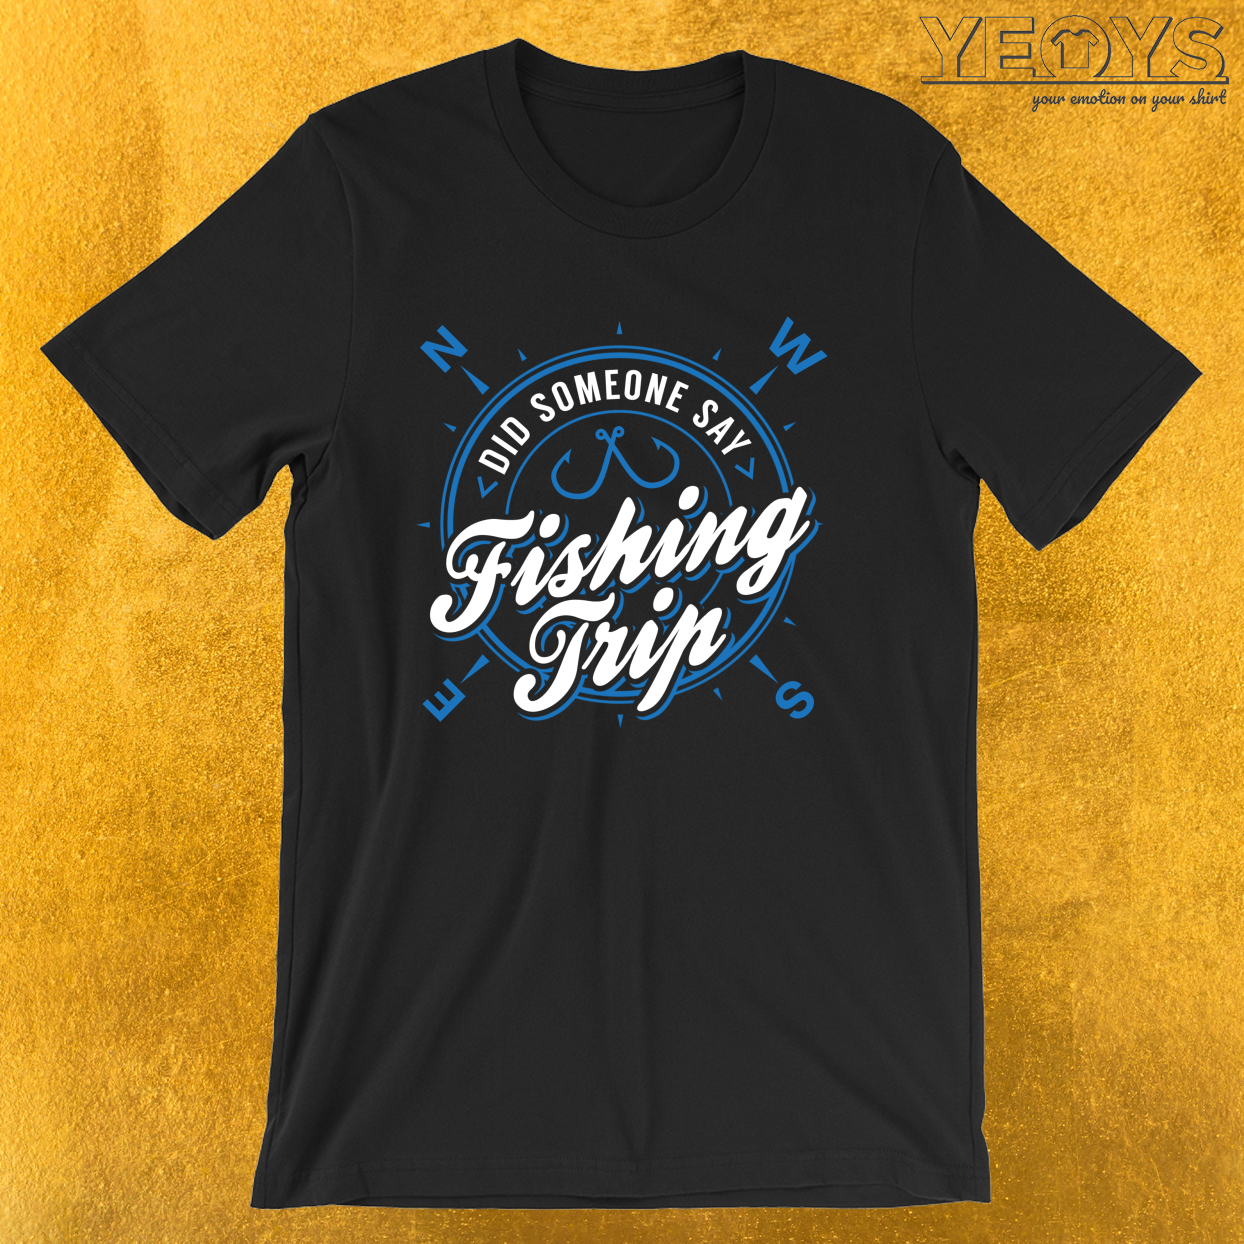 Lake & River Fishing – Did Someone Say Fishing Trip Tee